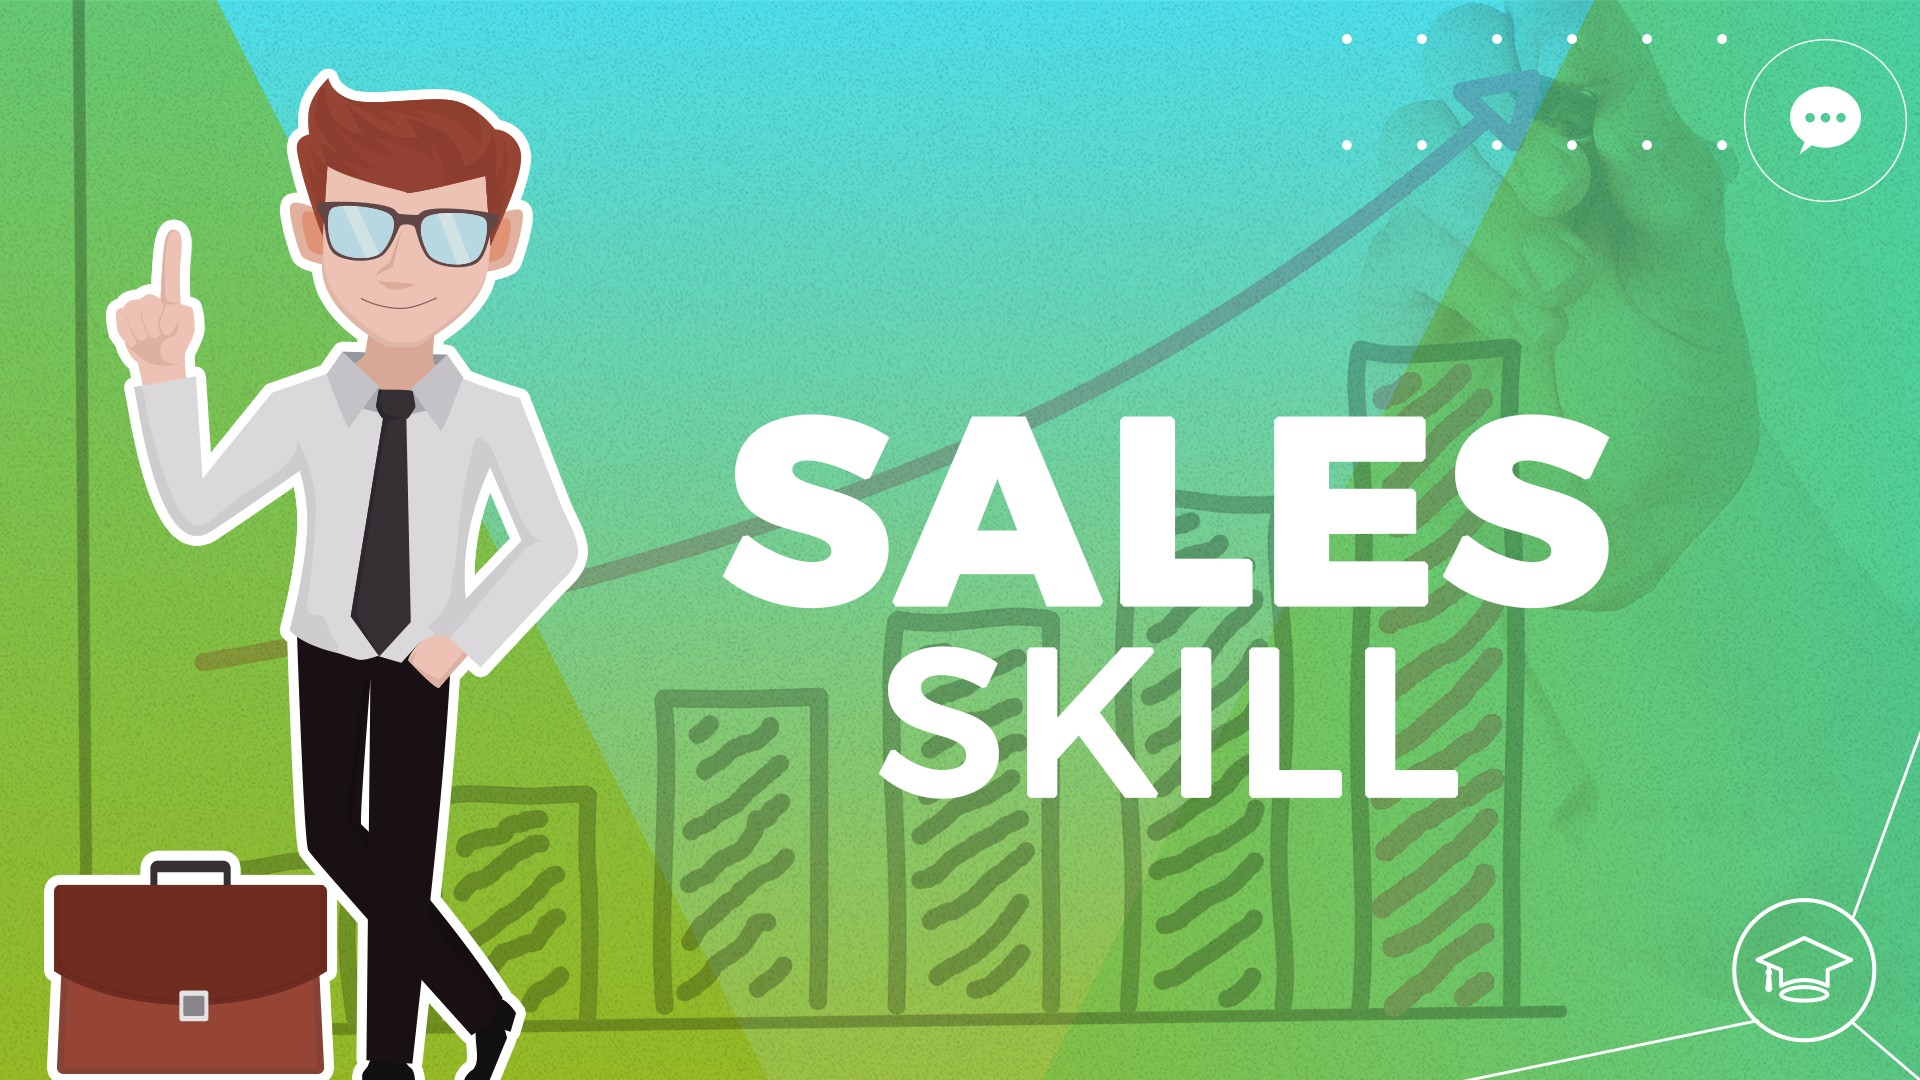 Sales skills you need to have